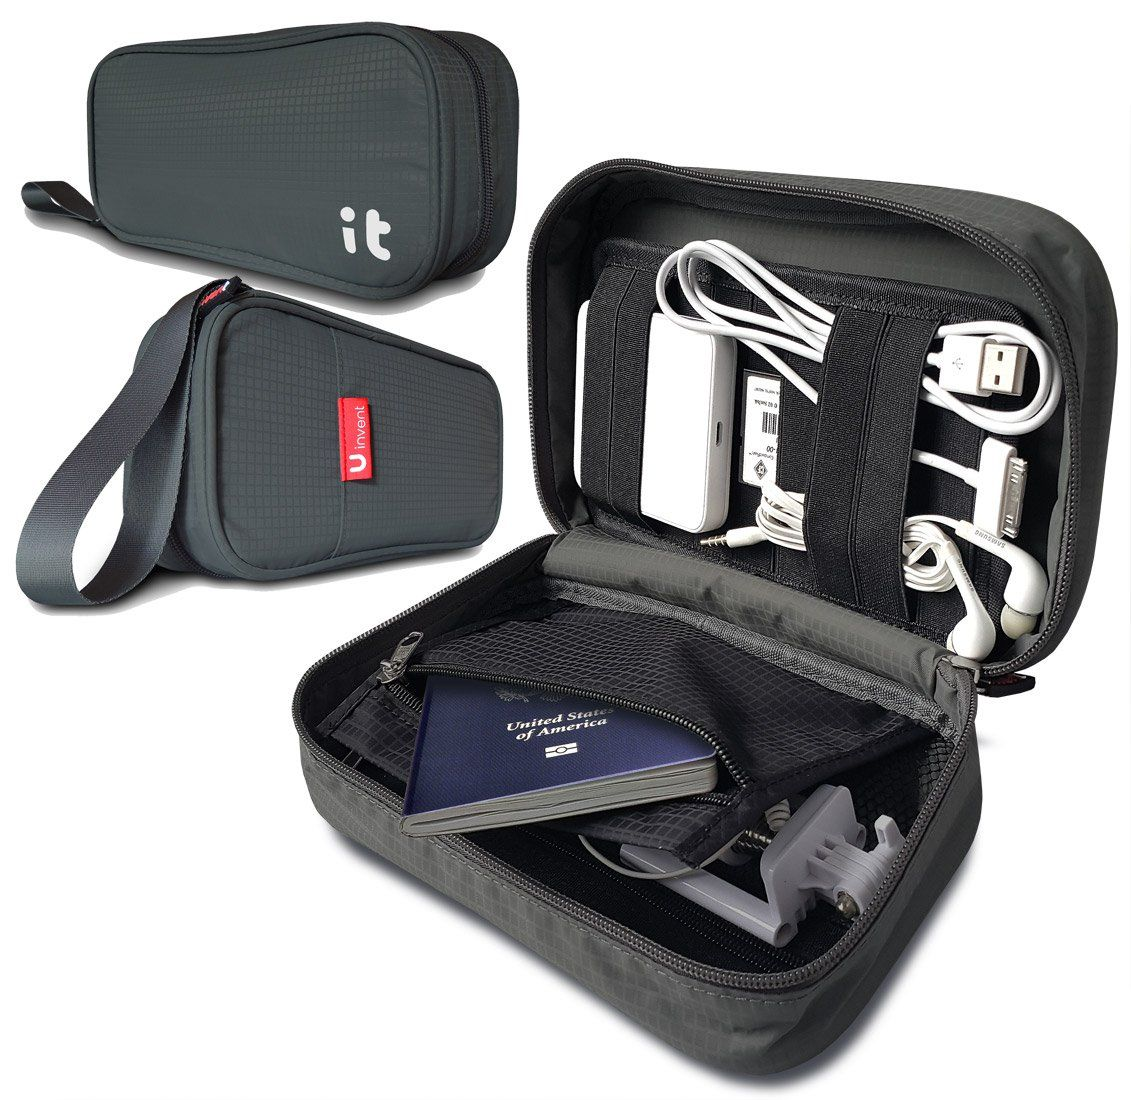 Travel Cord Organizer Electronics Accessories Case Cable Hand Dark Gray